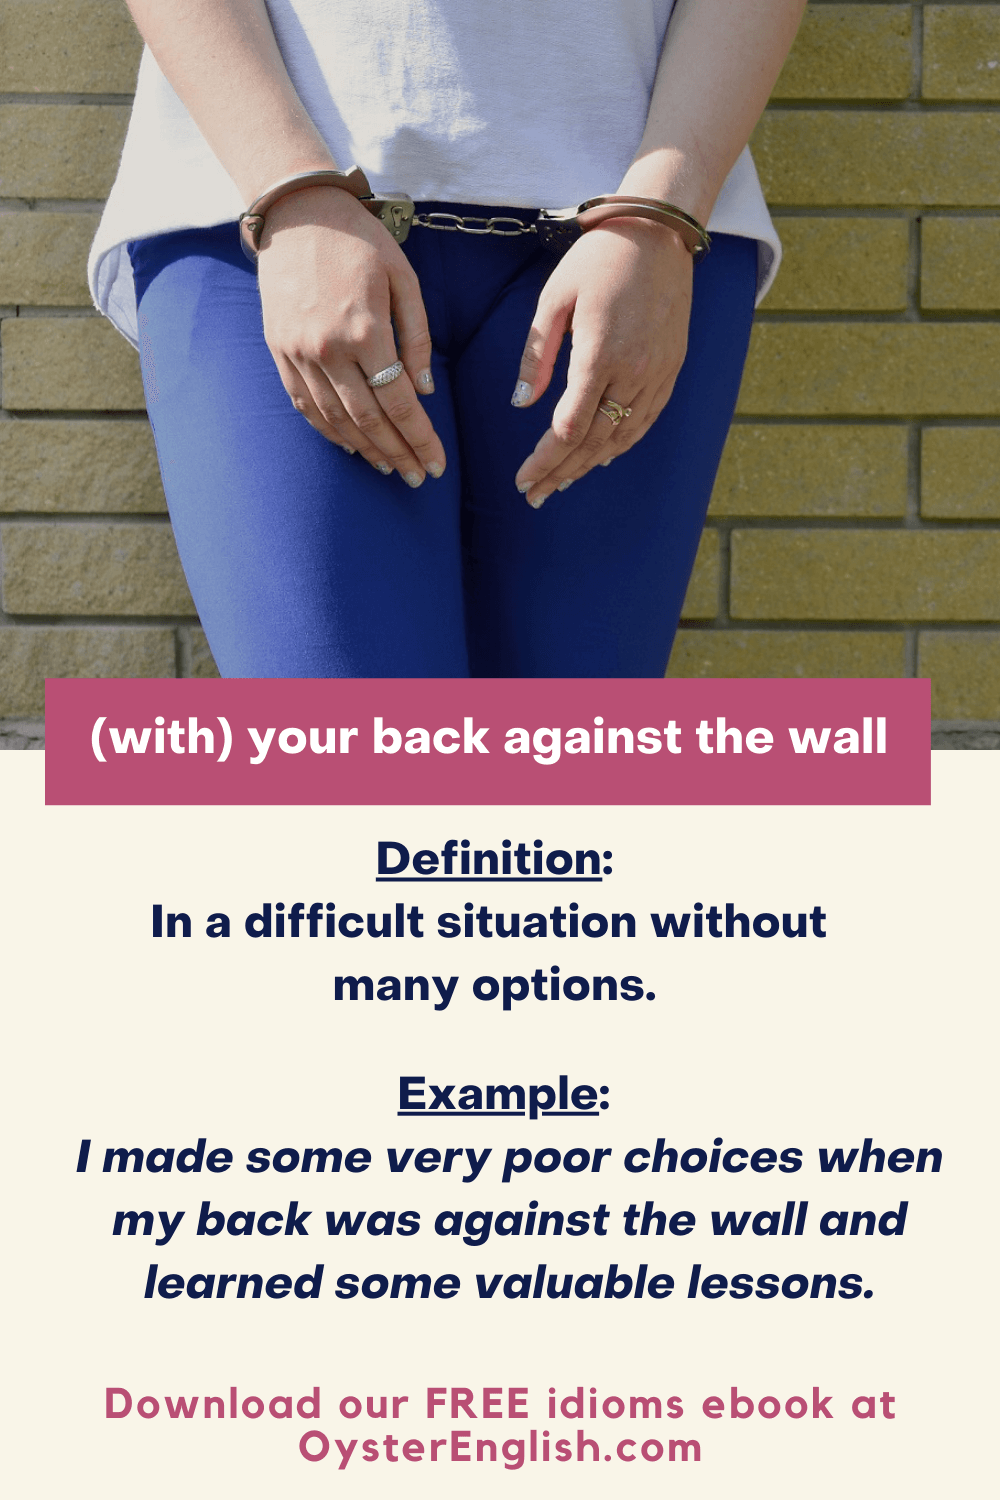 A young woman standing with her back against the wall with her hands handcuffed in front: I made some very poor decisions when my back was against the wall and learned some valuable lessons.